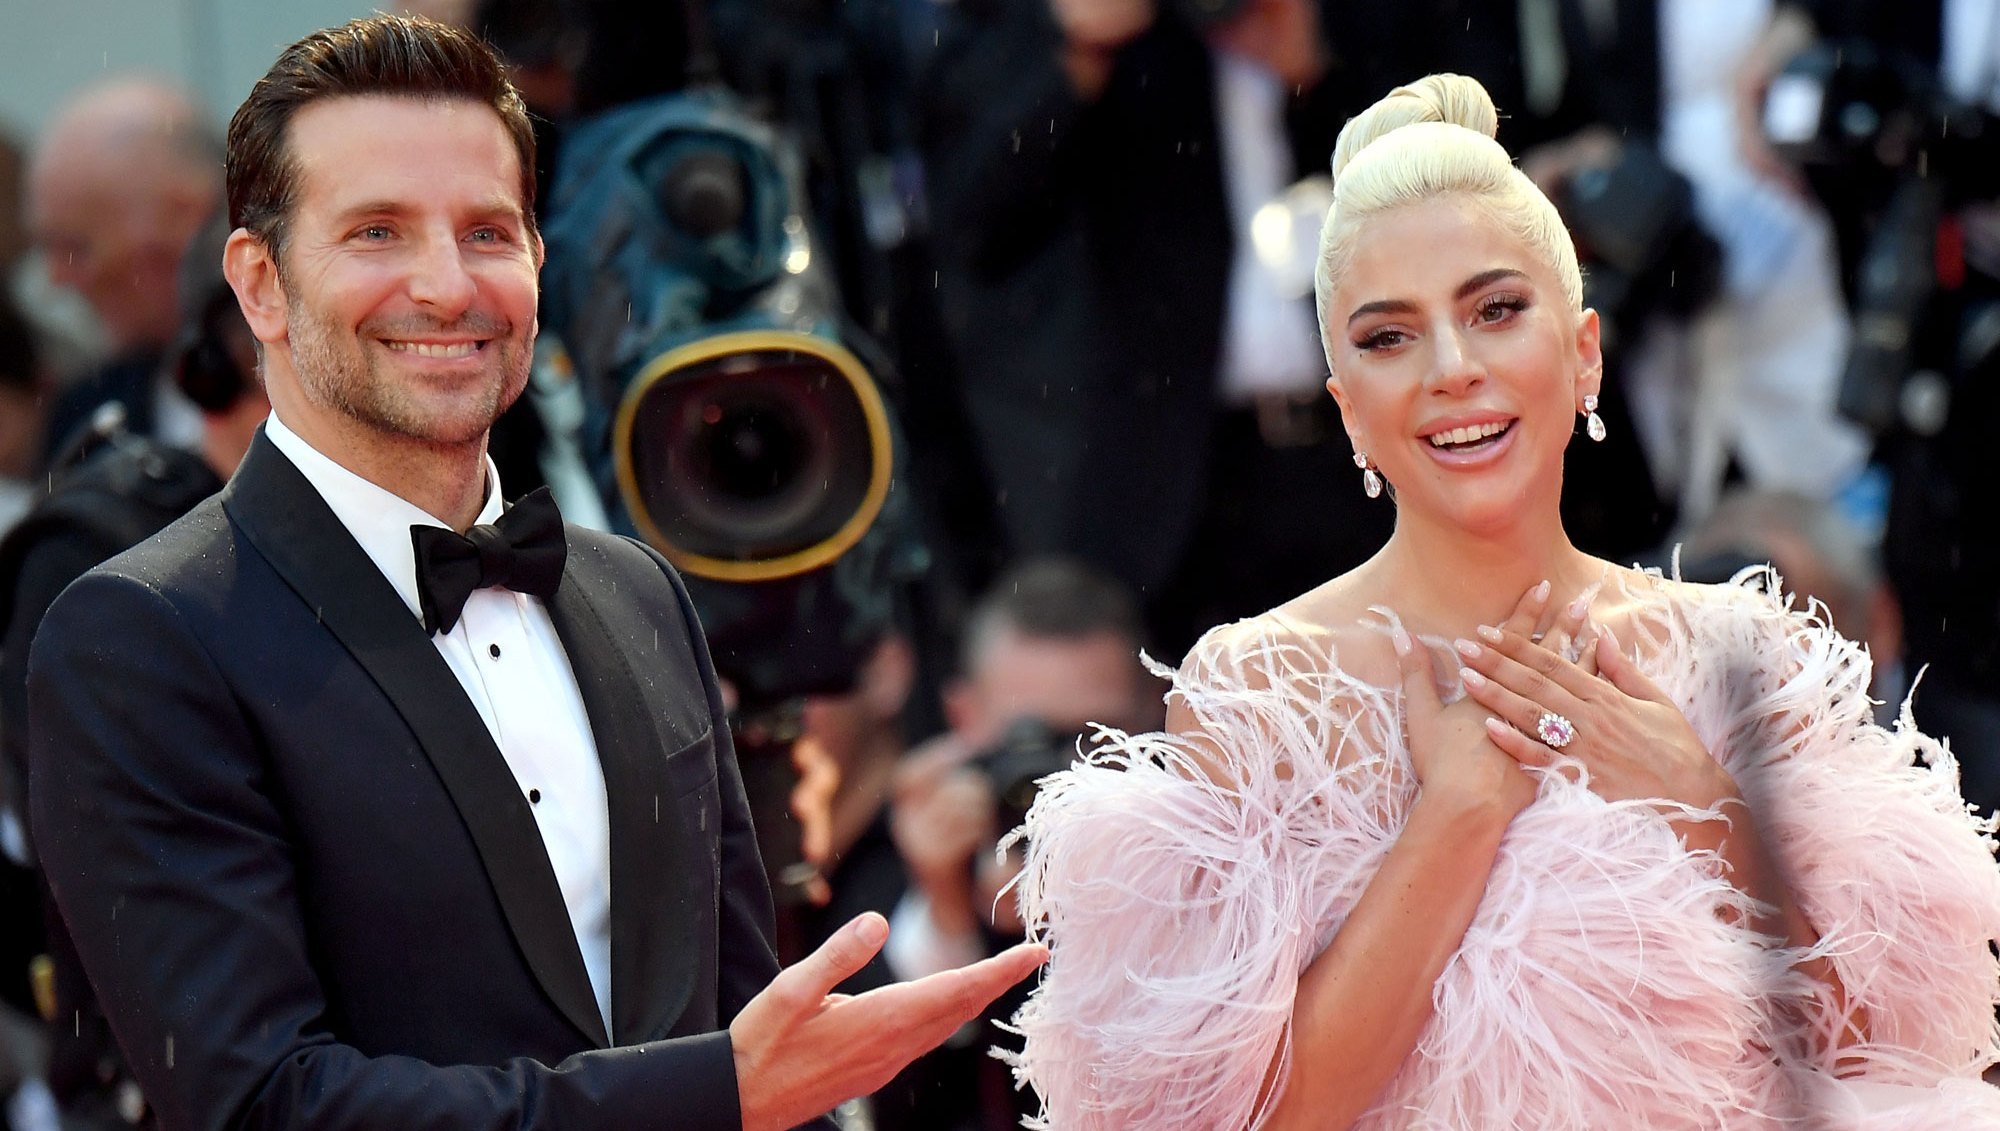 Bradley Cooper Dismisses 'A Star Is Born' Tour Reunion Lady Gaga 75th Venice Film Festival